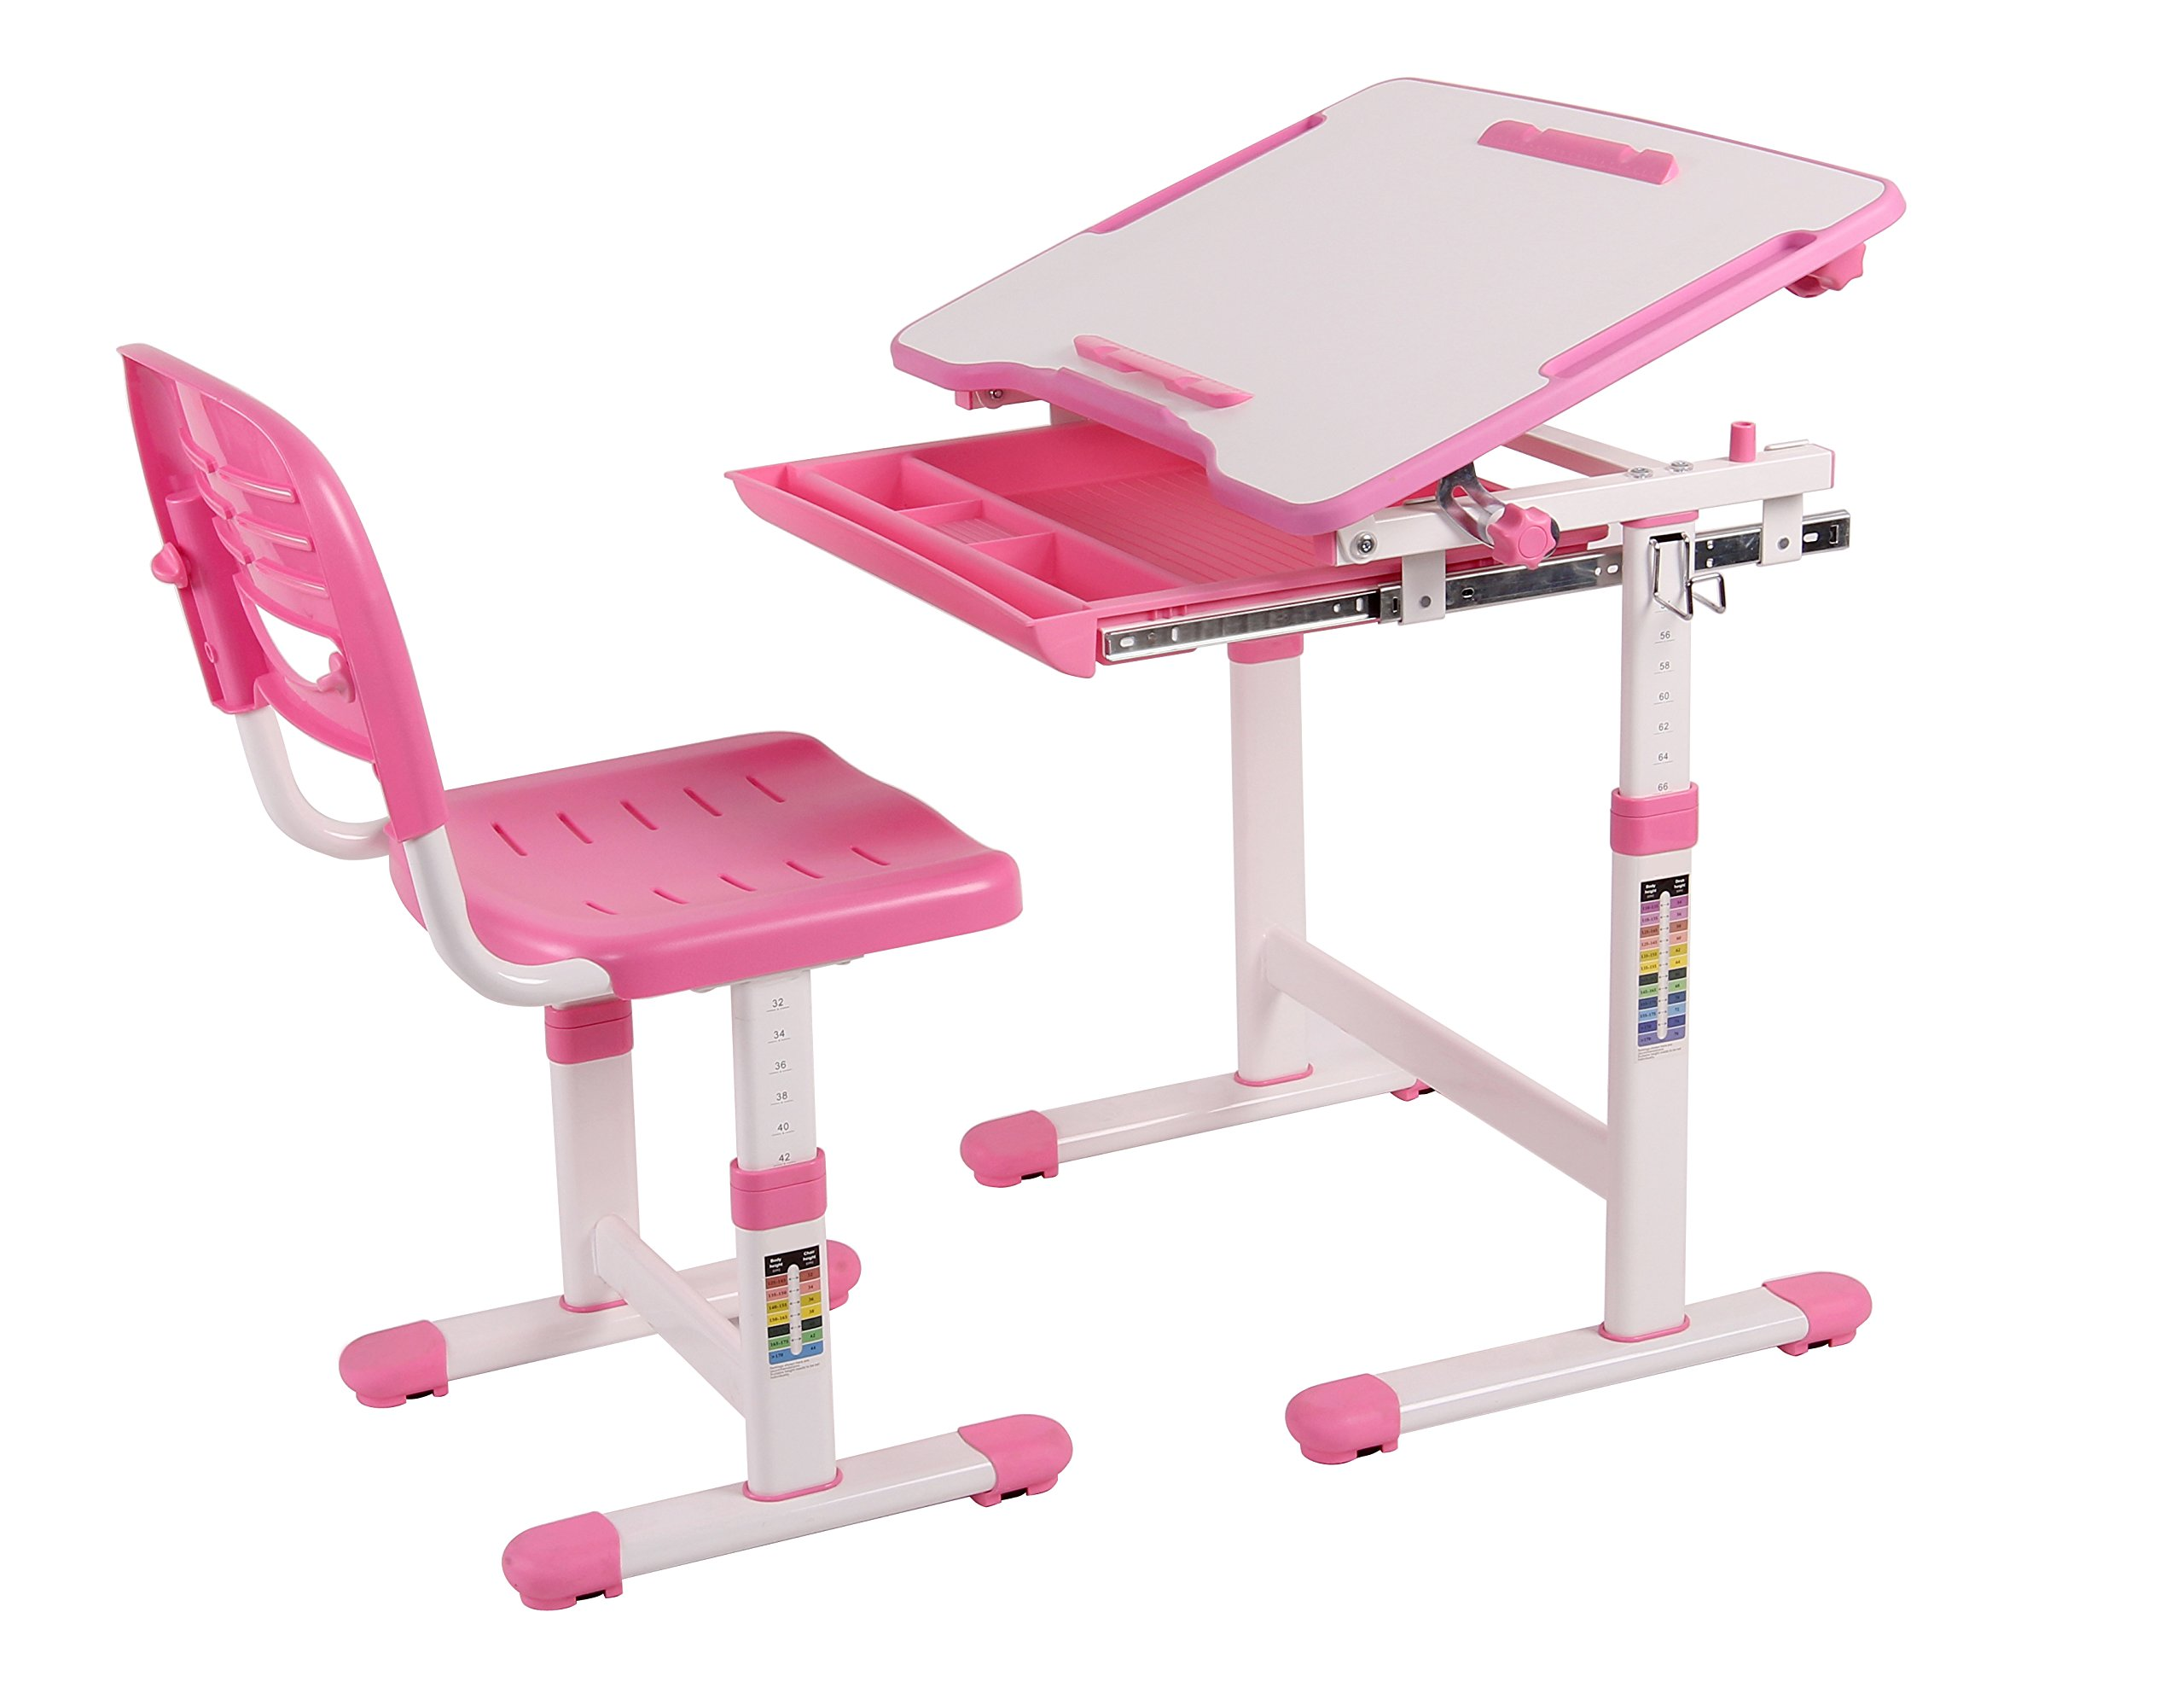 Wymo Kids Ergonomic Adjustable Childrens Desk & Chair With Drawing Paper Roll (Pink)